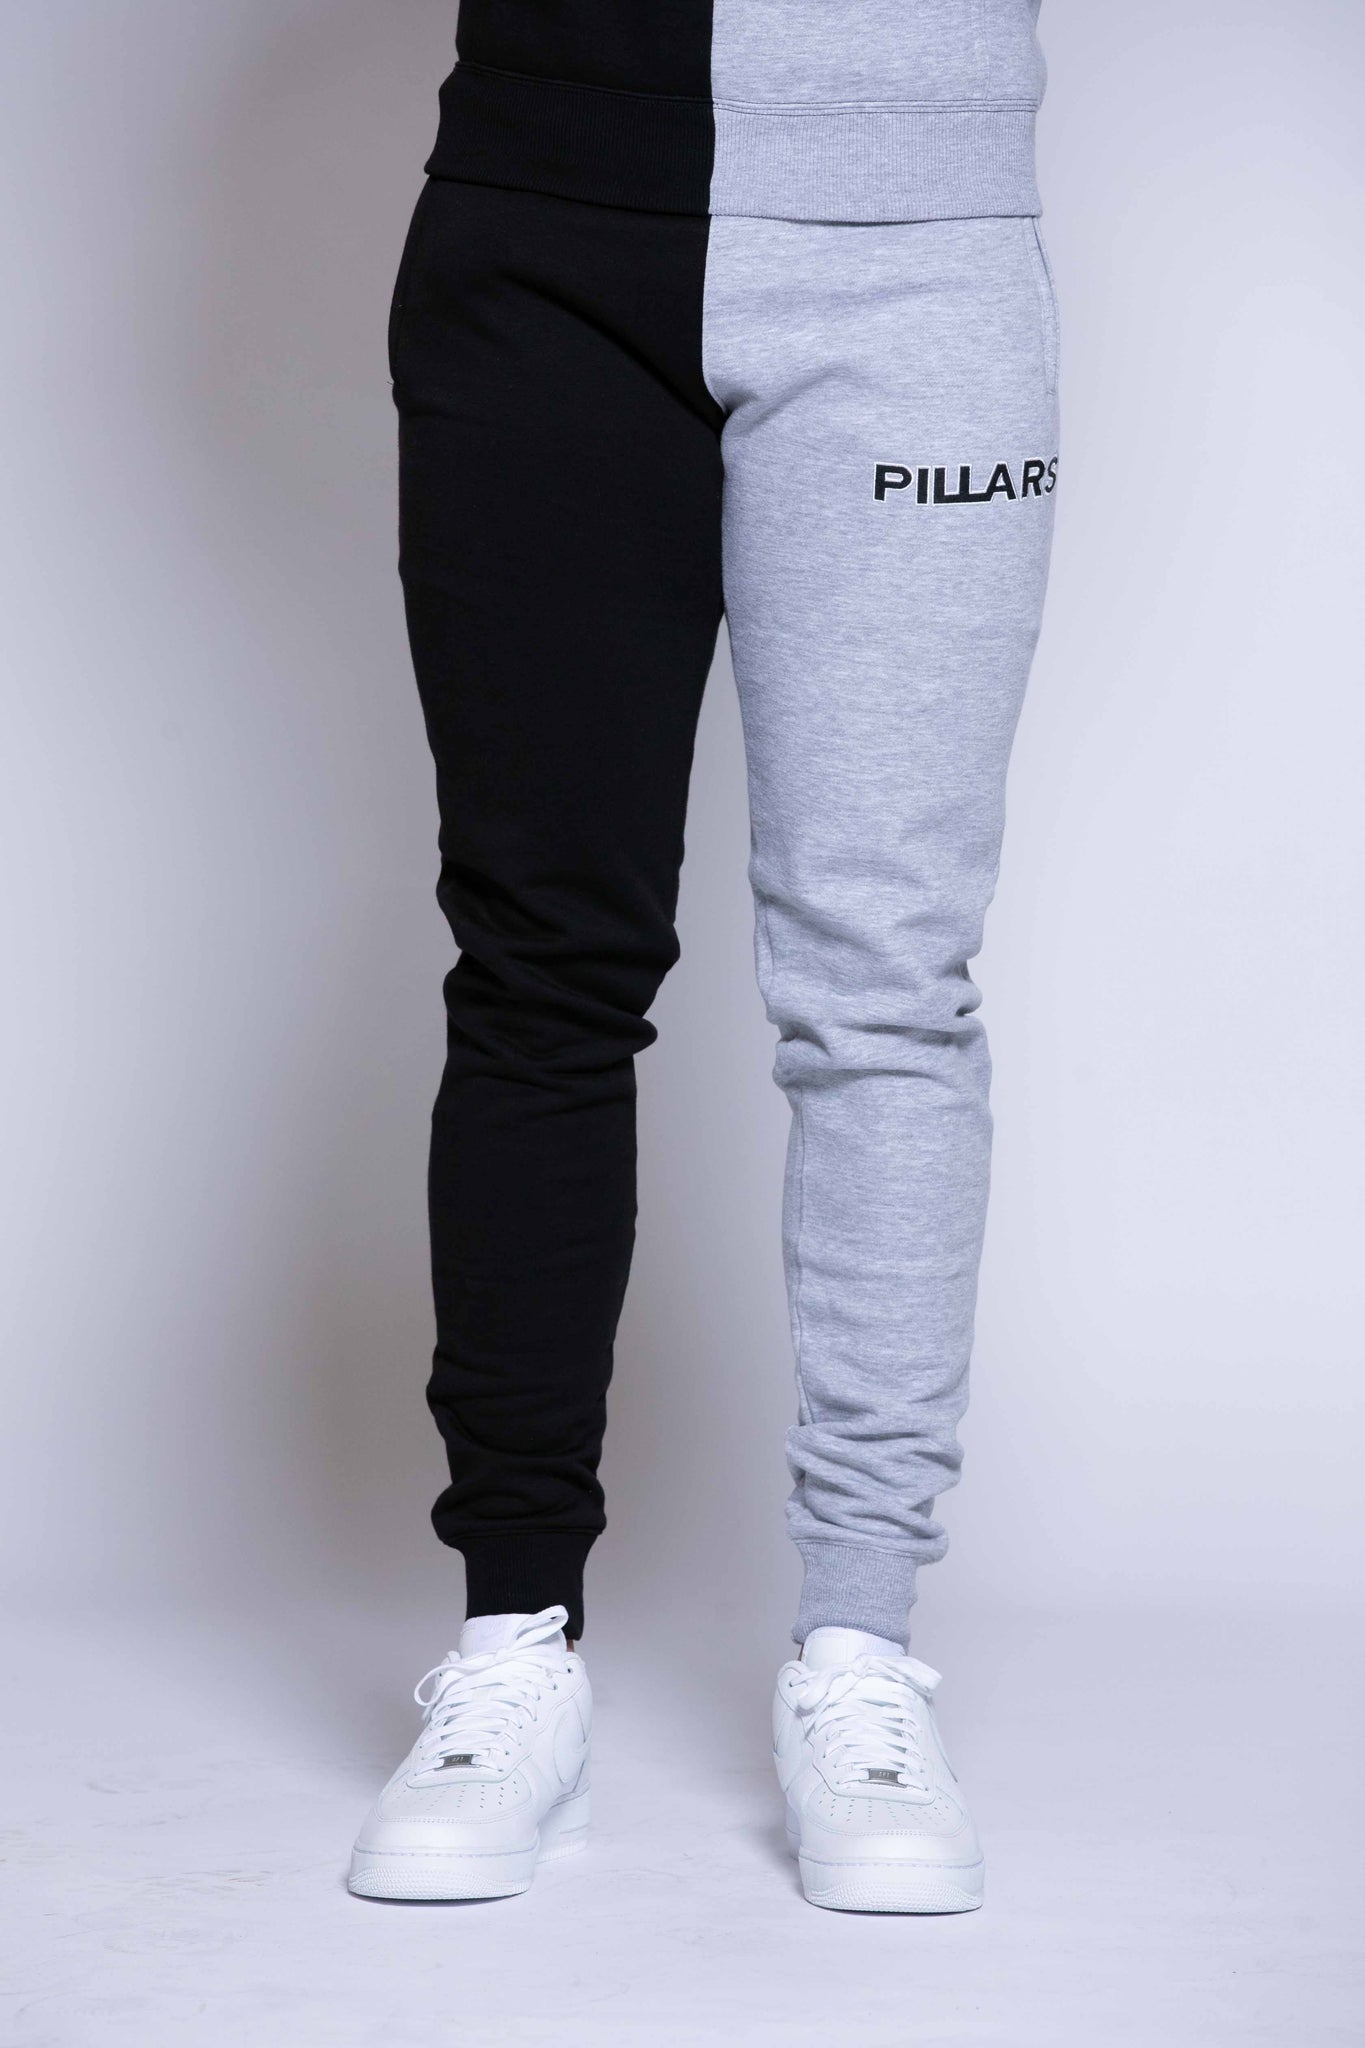 HALF & HALF PANT | BLACK/GREY (MENS)